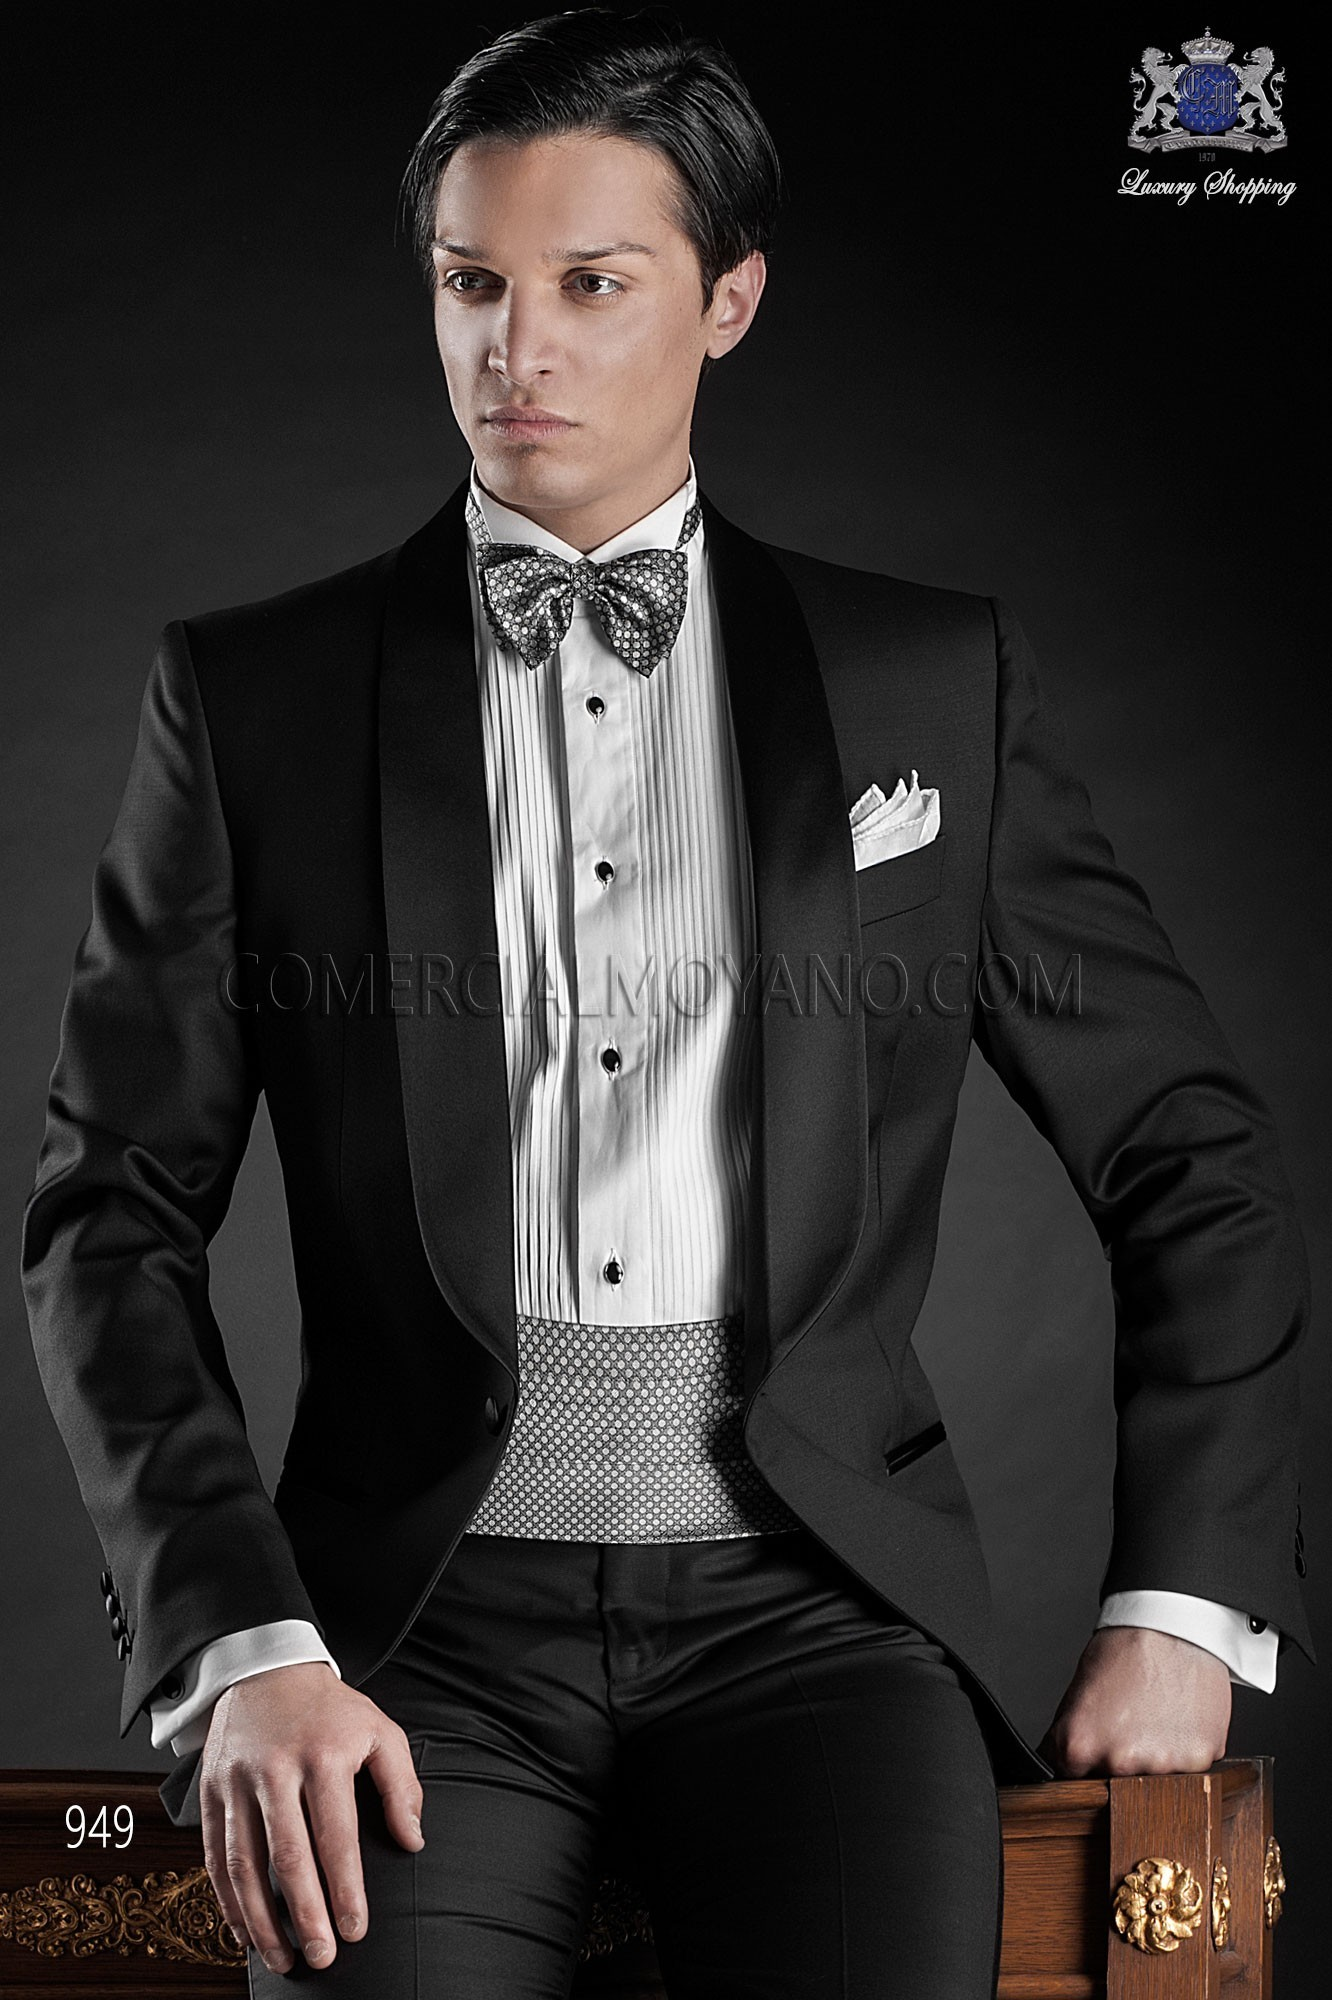 Black Tie black men wedding suit model 949 Ottavio Nuccio Gala